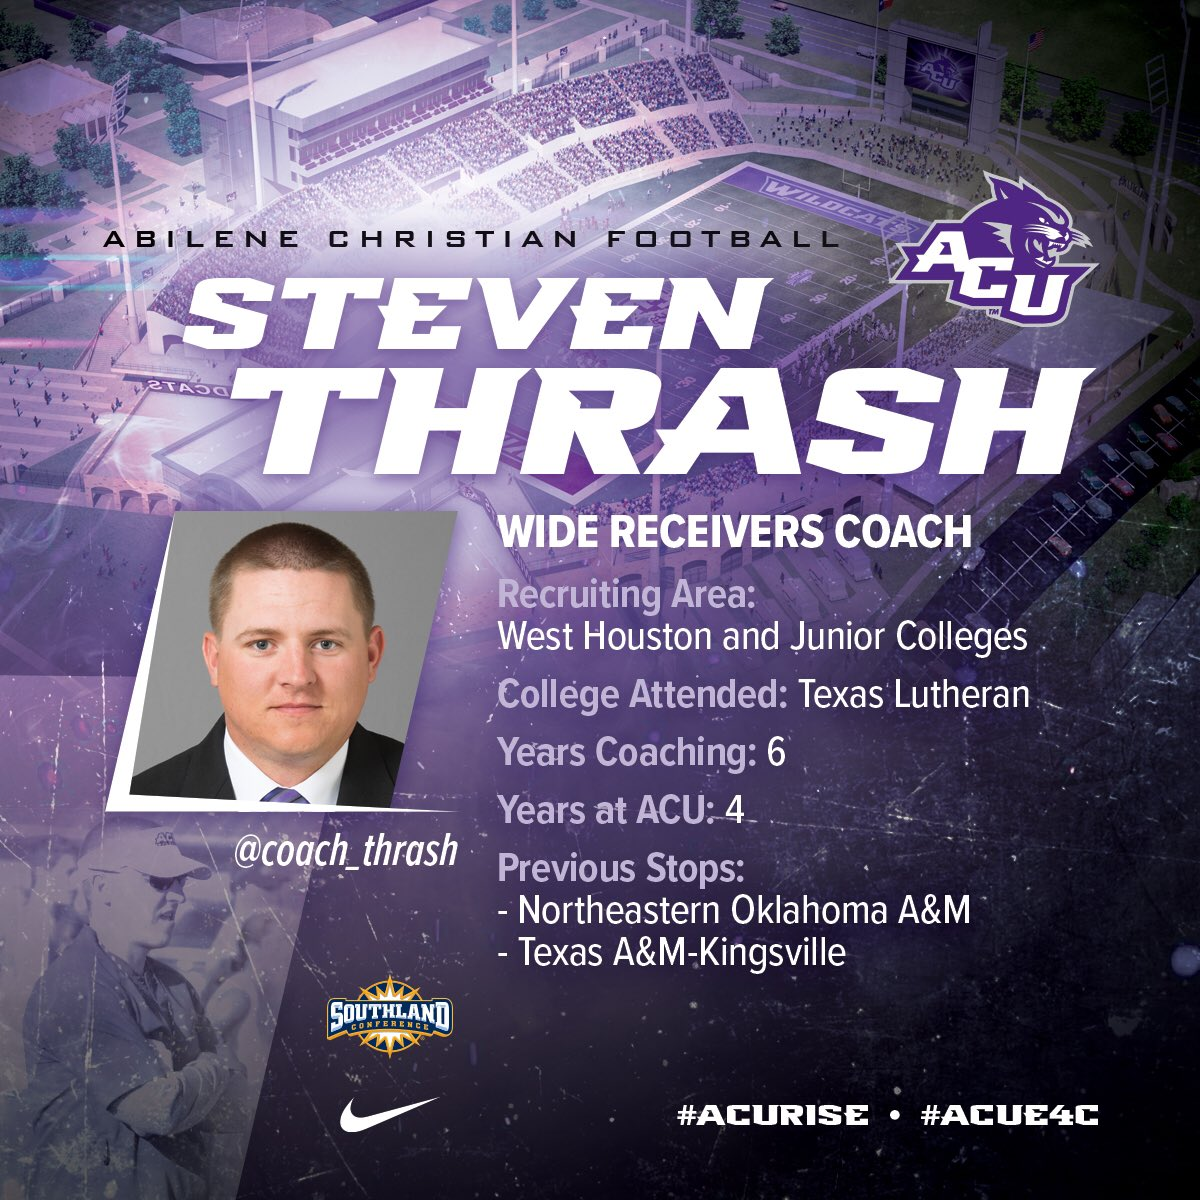 Acu Football On Twitter Fastfacts On Wide Receivers Coach Steven